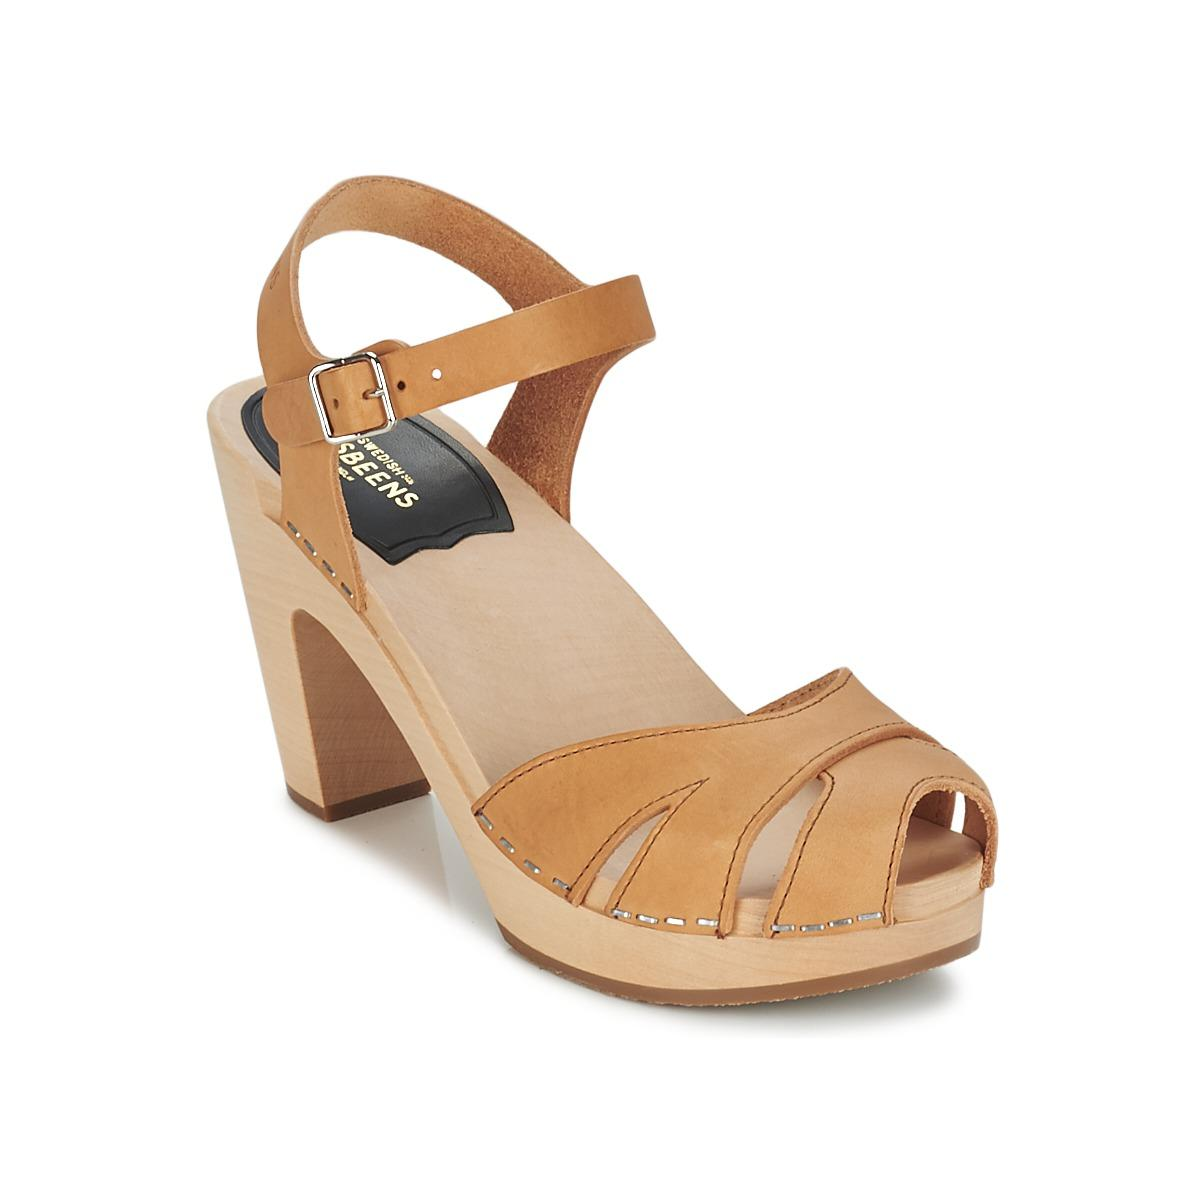 4875381d4e3 Swedish Hasbeens Suzanne Sandals in Natural - Lyst